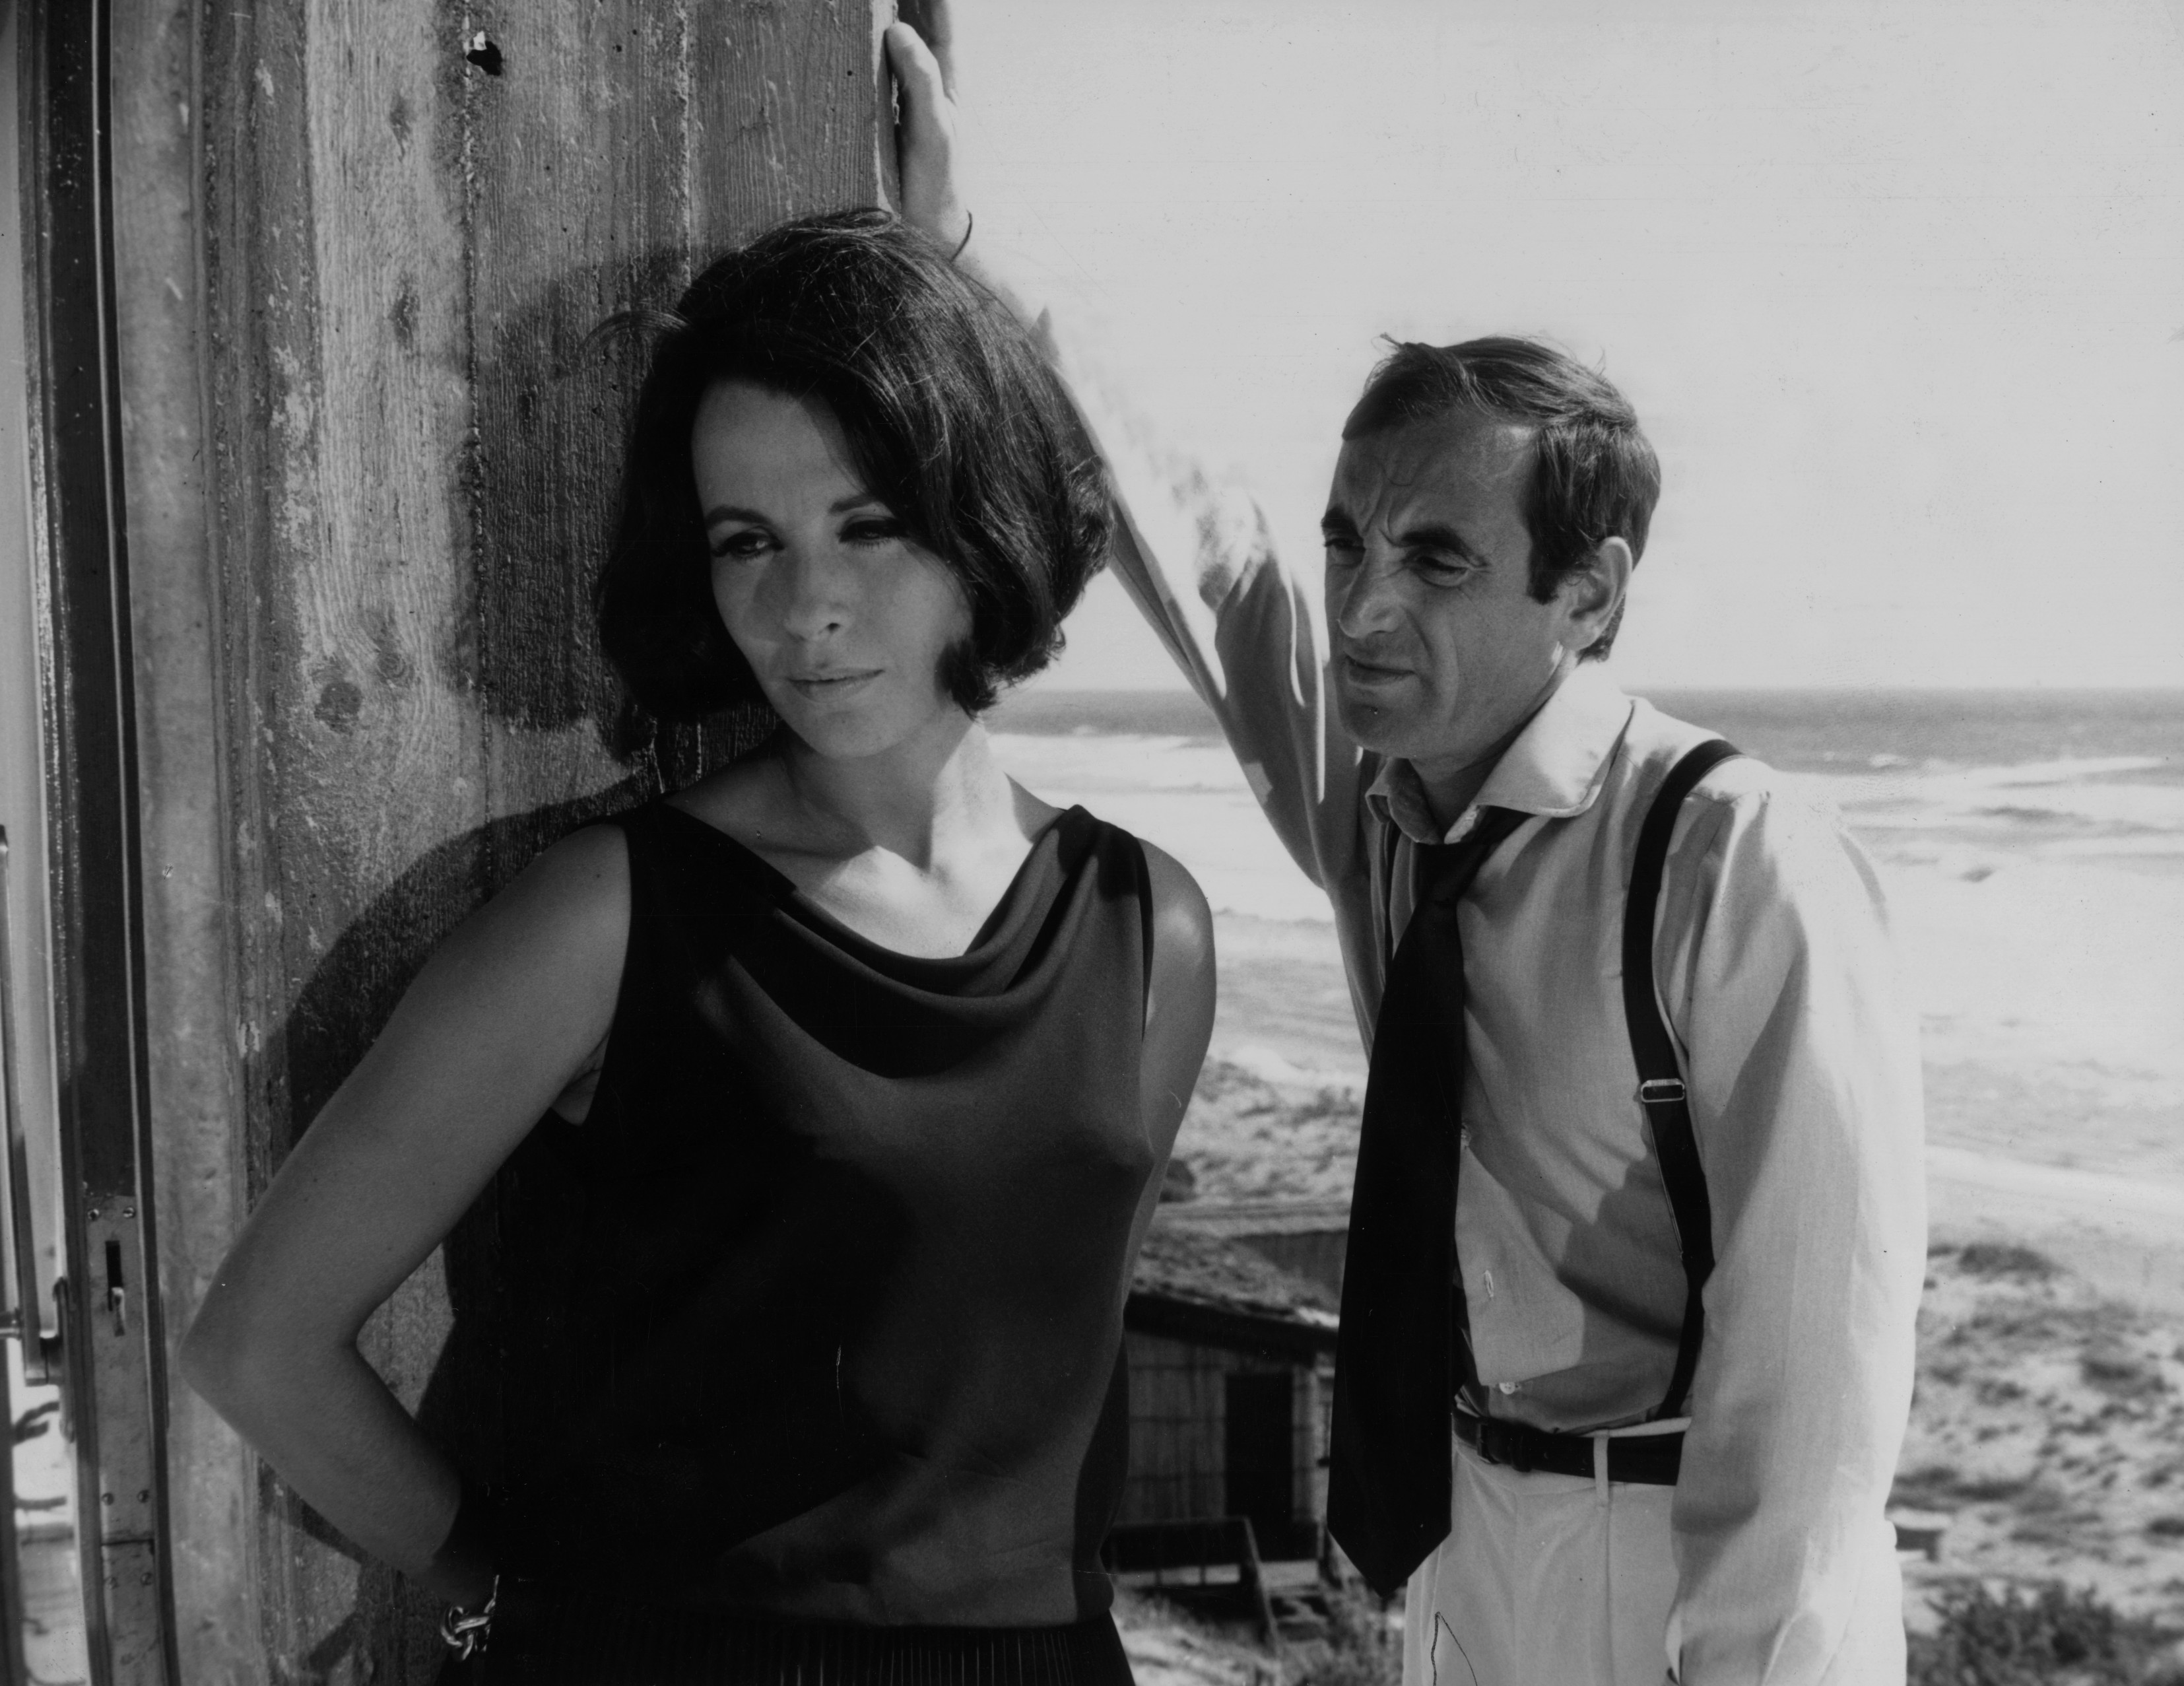 French singer and actor Charles Aznavour with English actress Claire Bloom in Rome for the filiming of 'High Infidelity'.